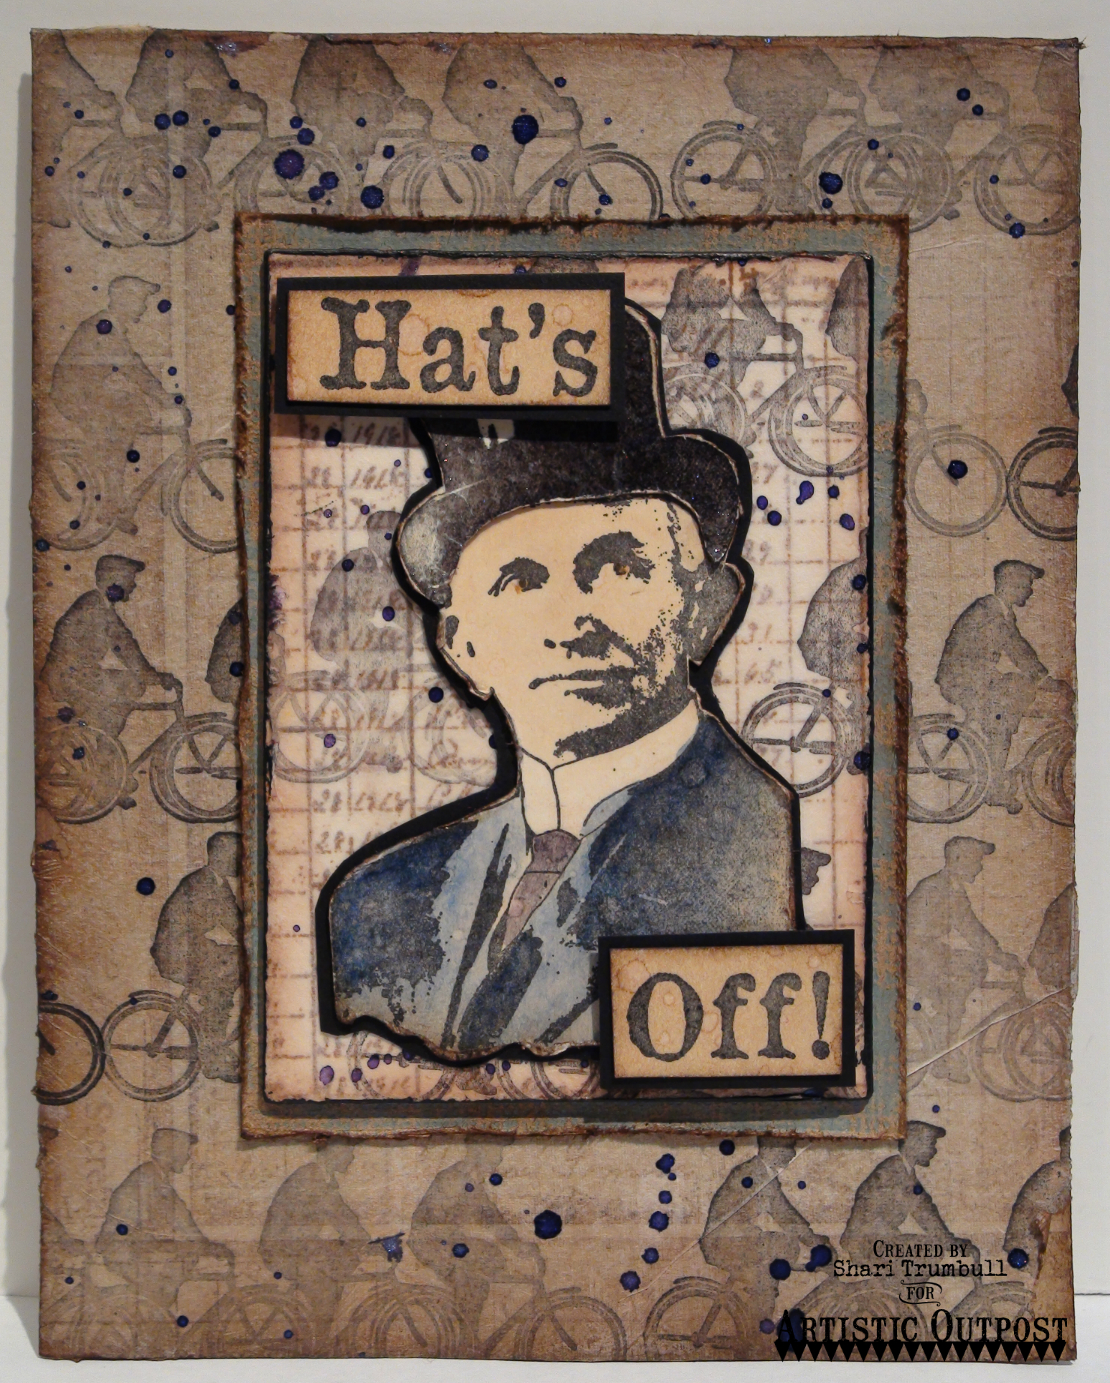 Stamps - Artistic Outpost Hat's Off, Hats Background, Ephemera Backgrounds